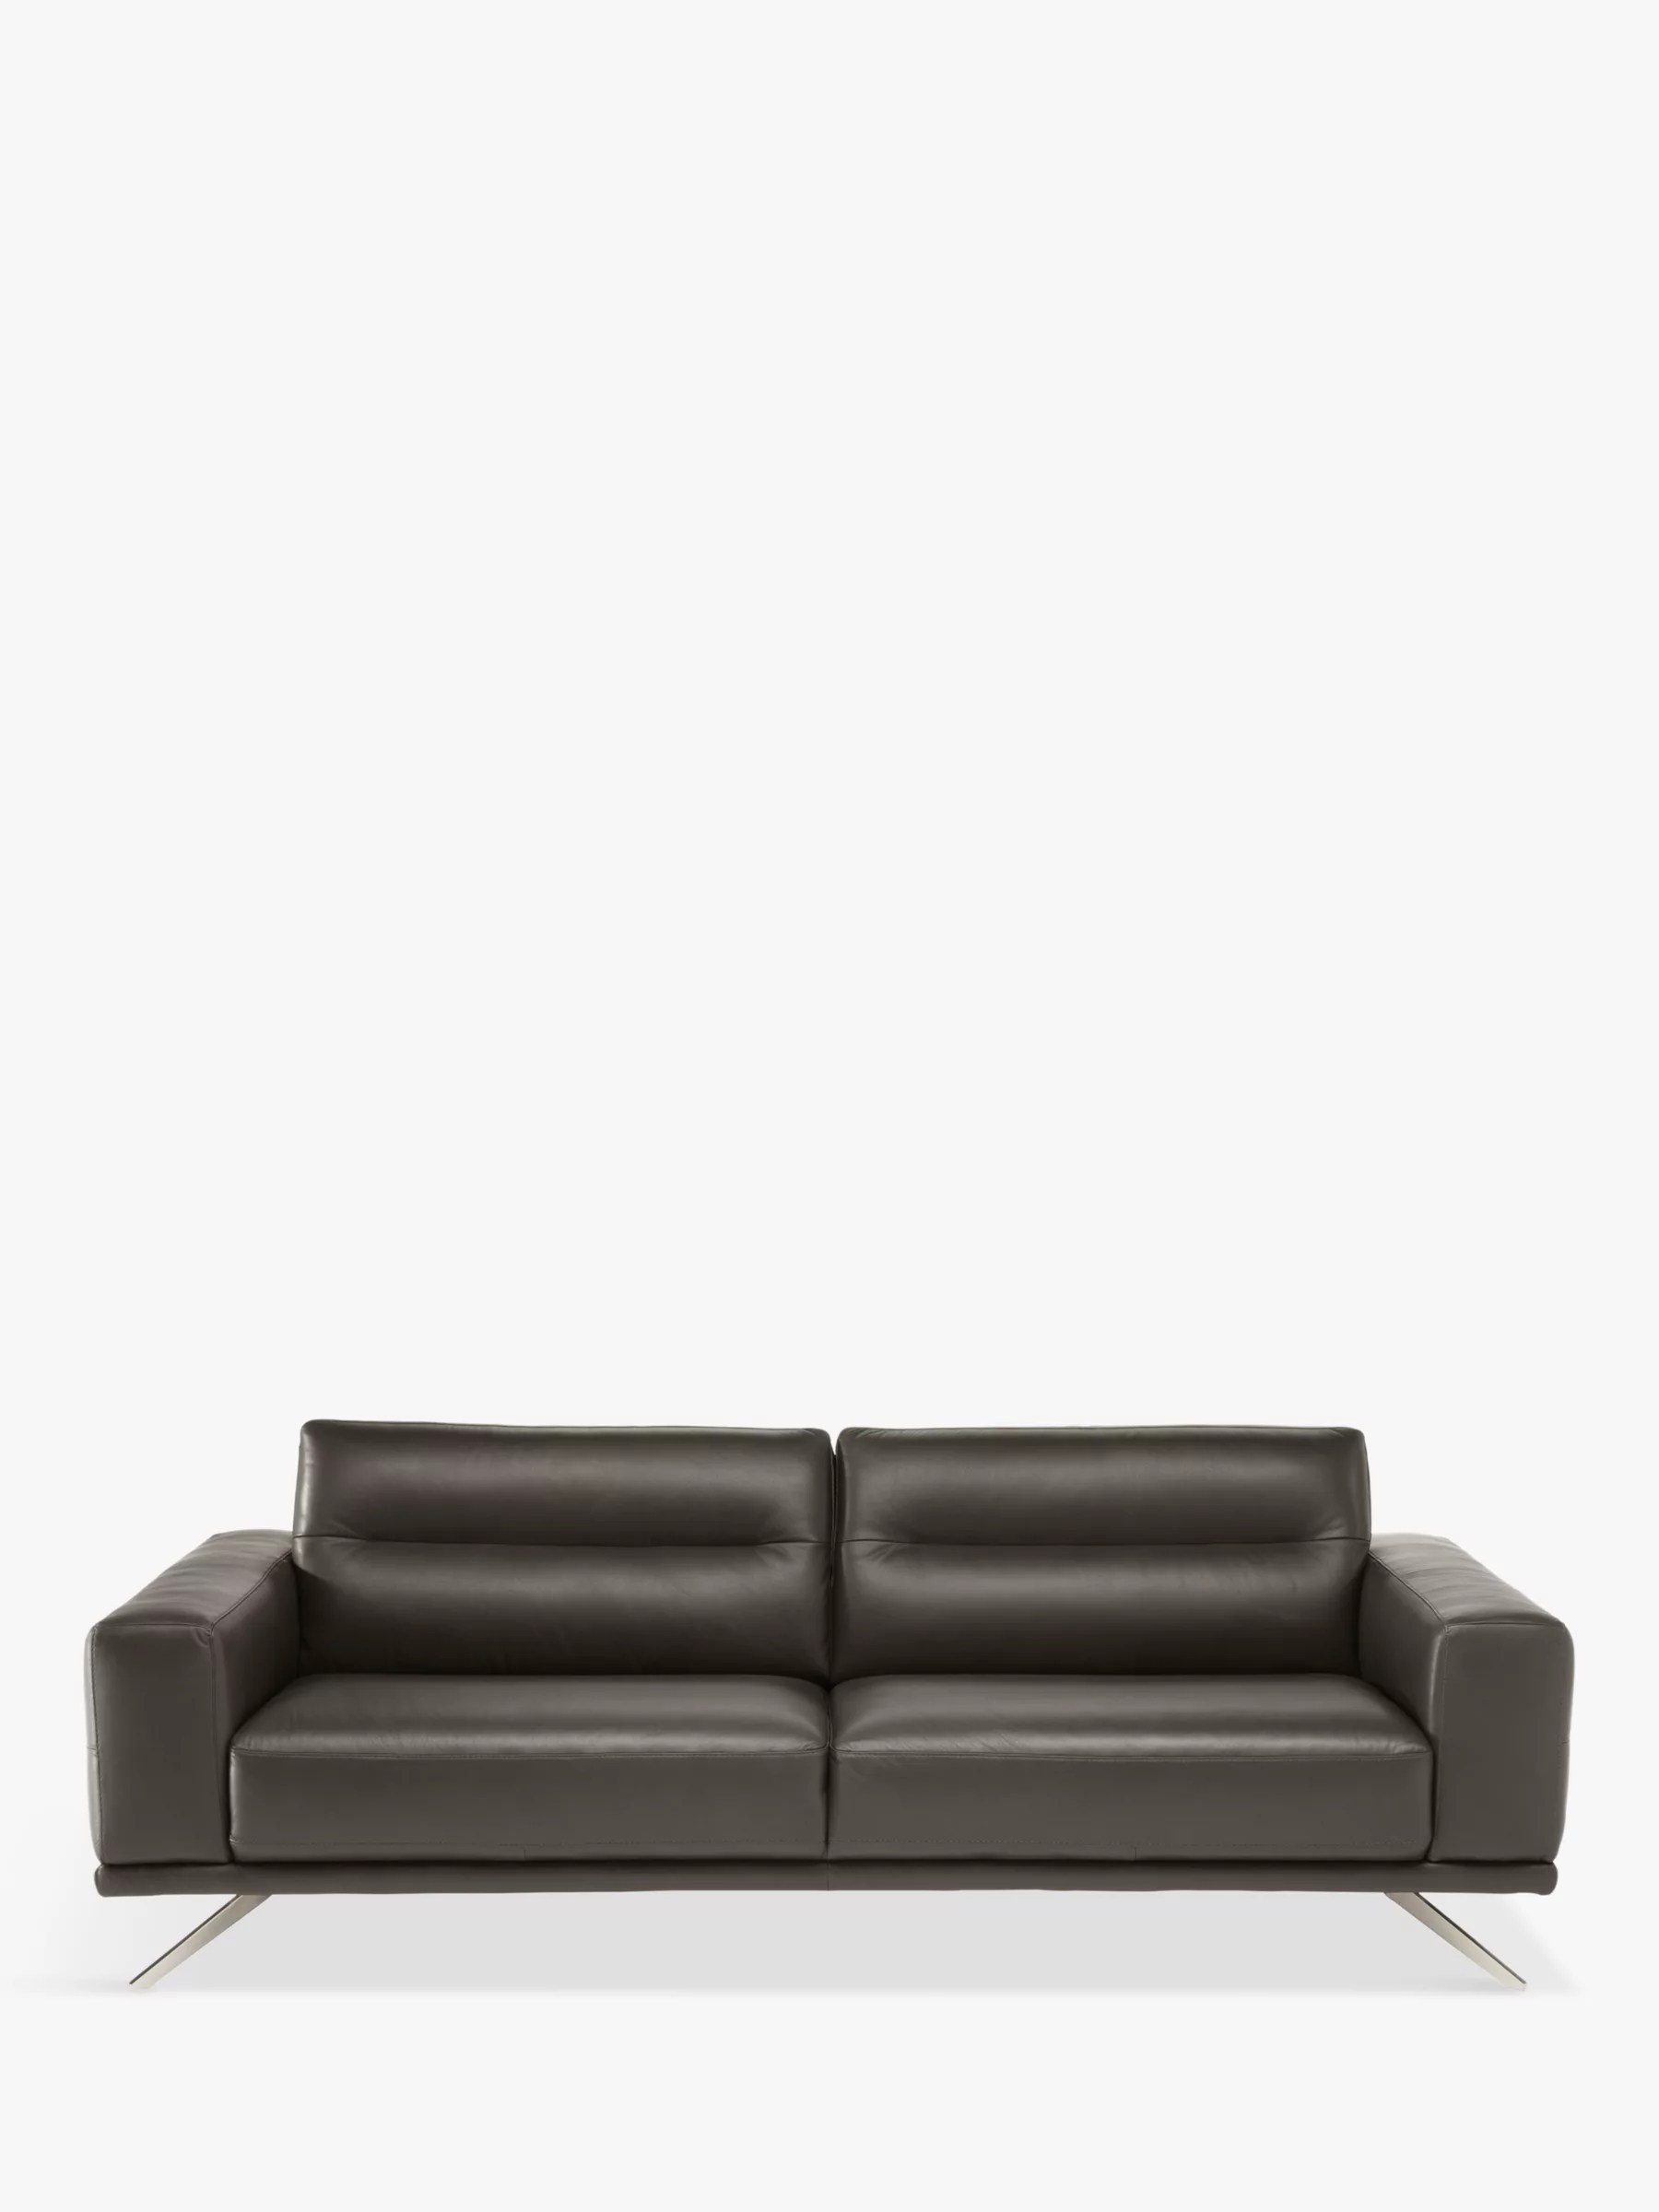 Chesterfield Sofa Riess Ambiente Finest Greige Leather Sofa Ph11 Roccommunity